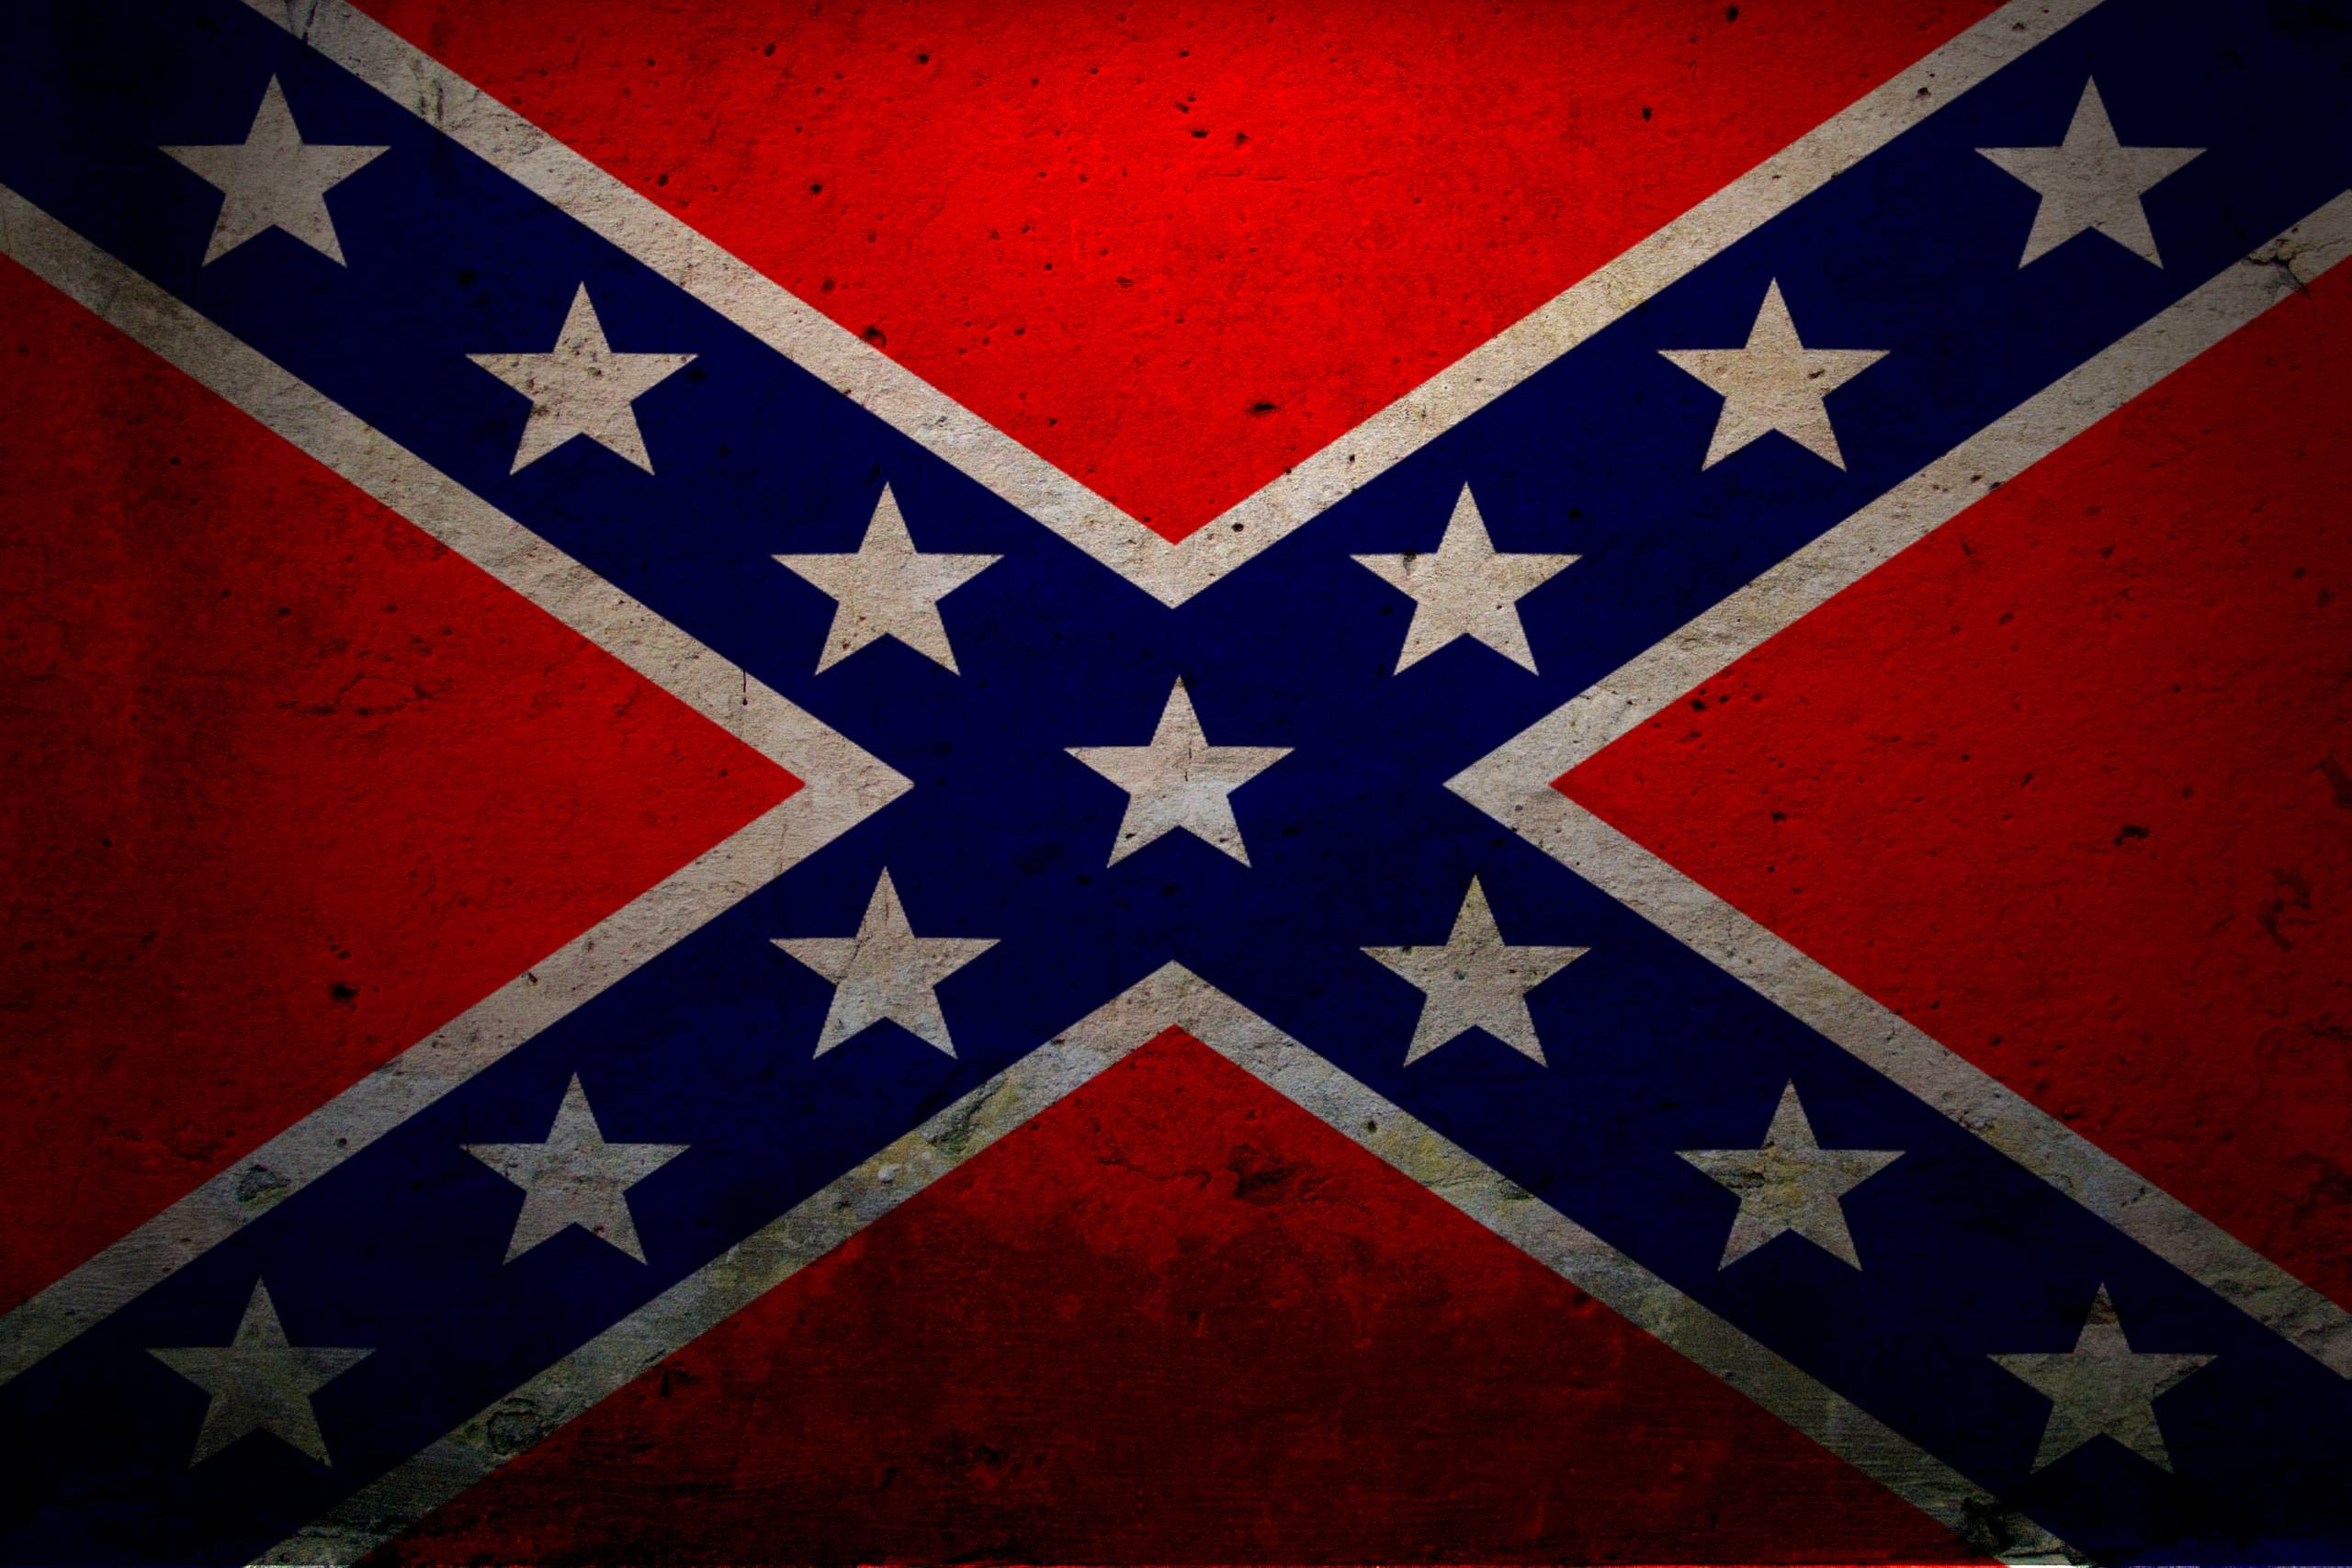 3 Flags Of The Confederate States Of America Wallpapers | Flags Of ..